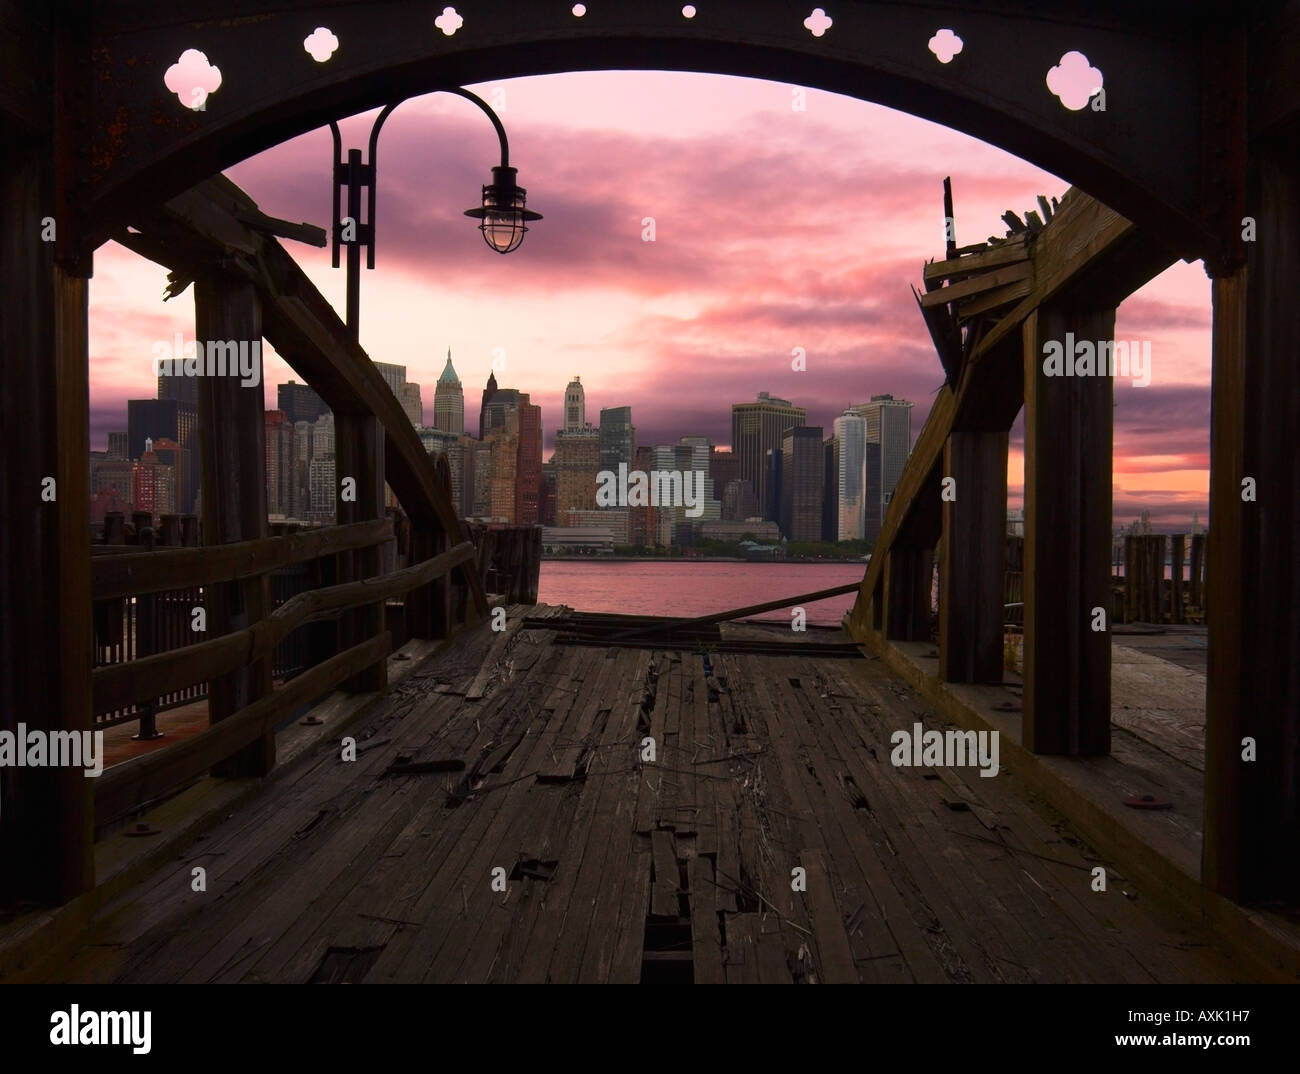 bridge boards rail at end water lamp ceiling arch urban city at evening sunrise morning sunset pink sky clouds water - Stock Image